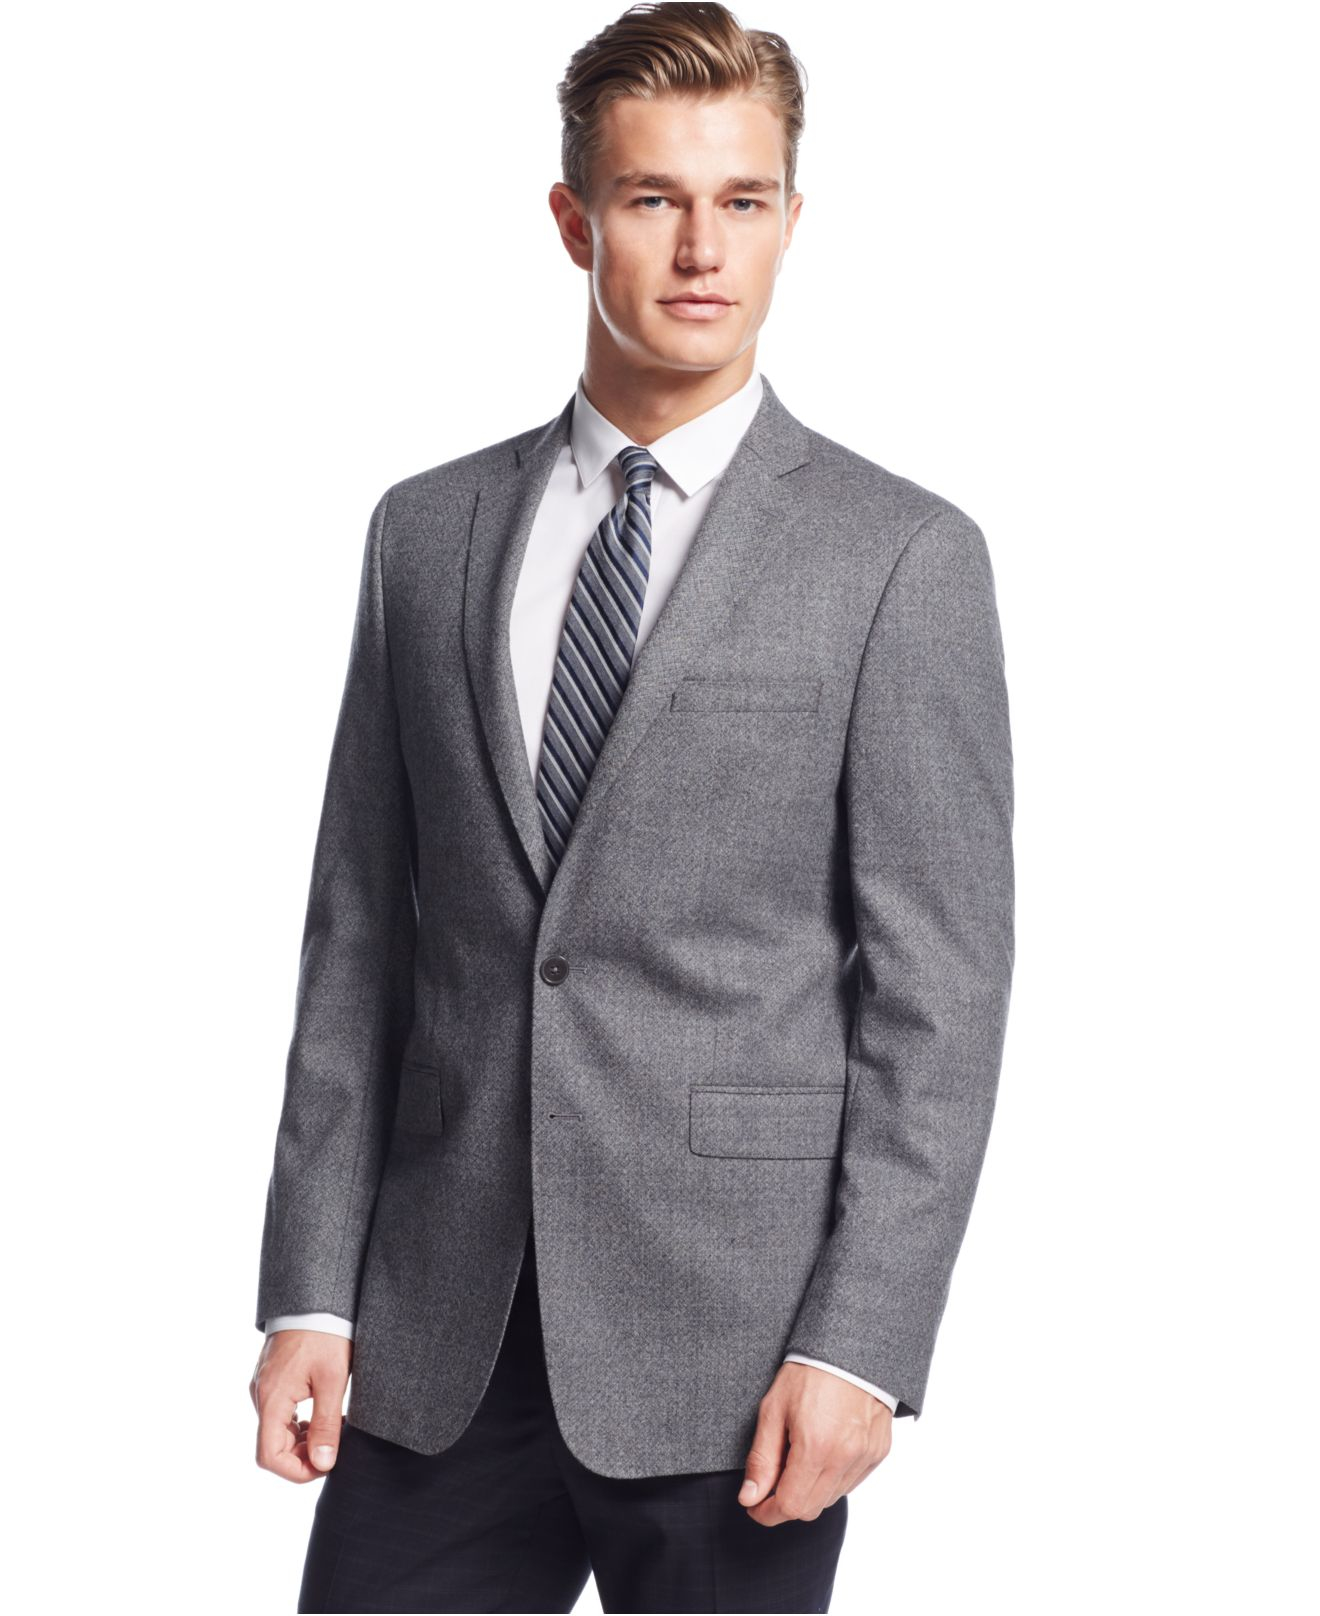 Enjoy free shipping and easy returns every day at Kohl's. Find great deals on Mens Grey Dress Blazers & Suit Jackets at Kohl's today!